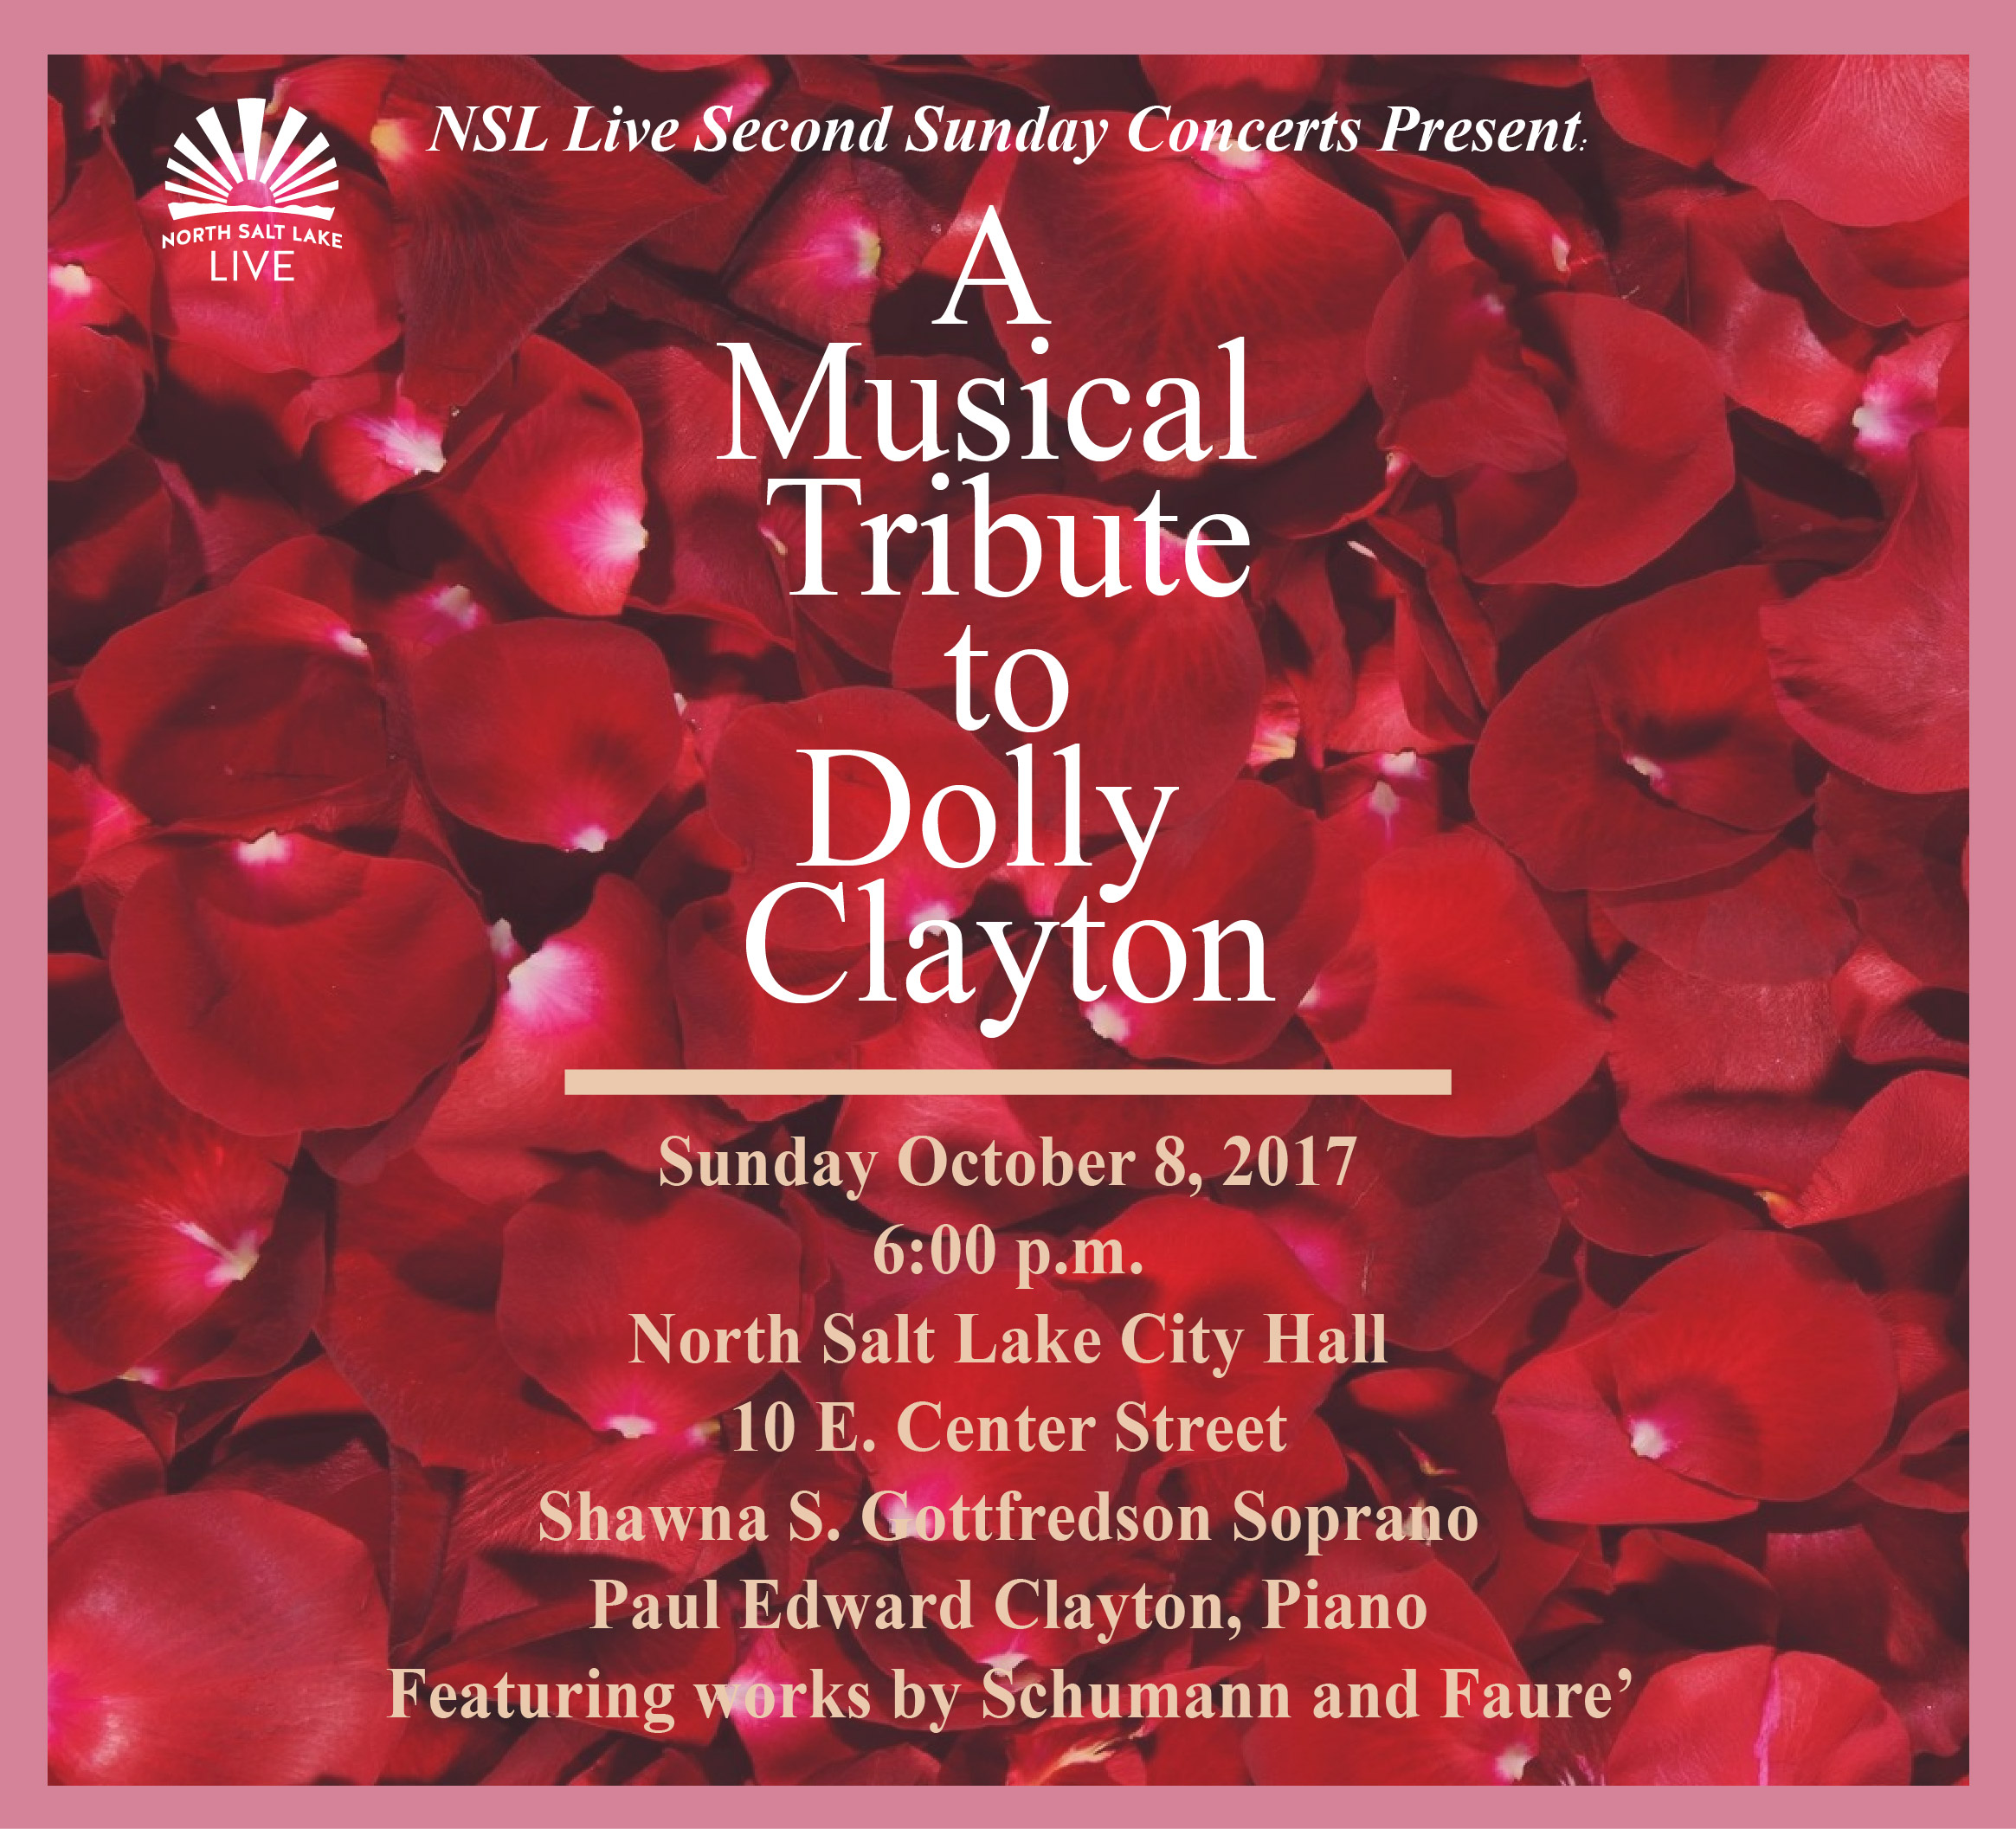 North salt lake ut official website 2017 second sunday concert october rose petalsg kristyandbryce Image collections